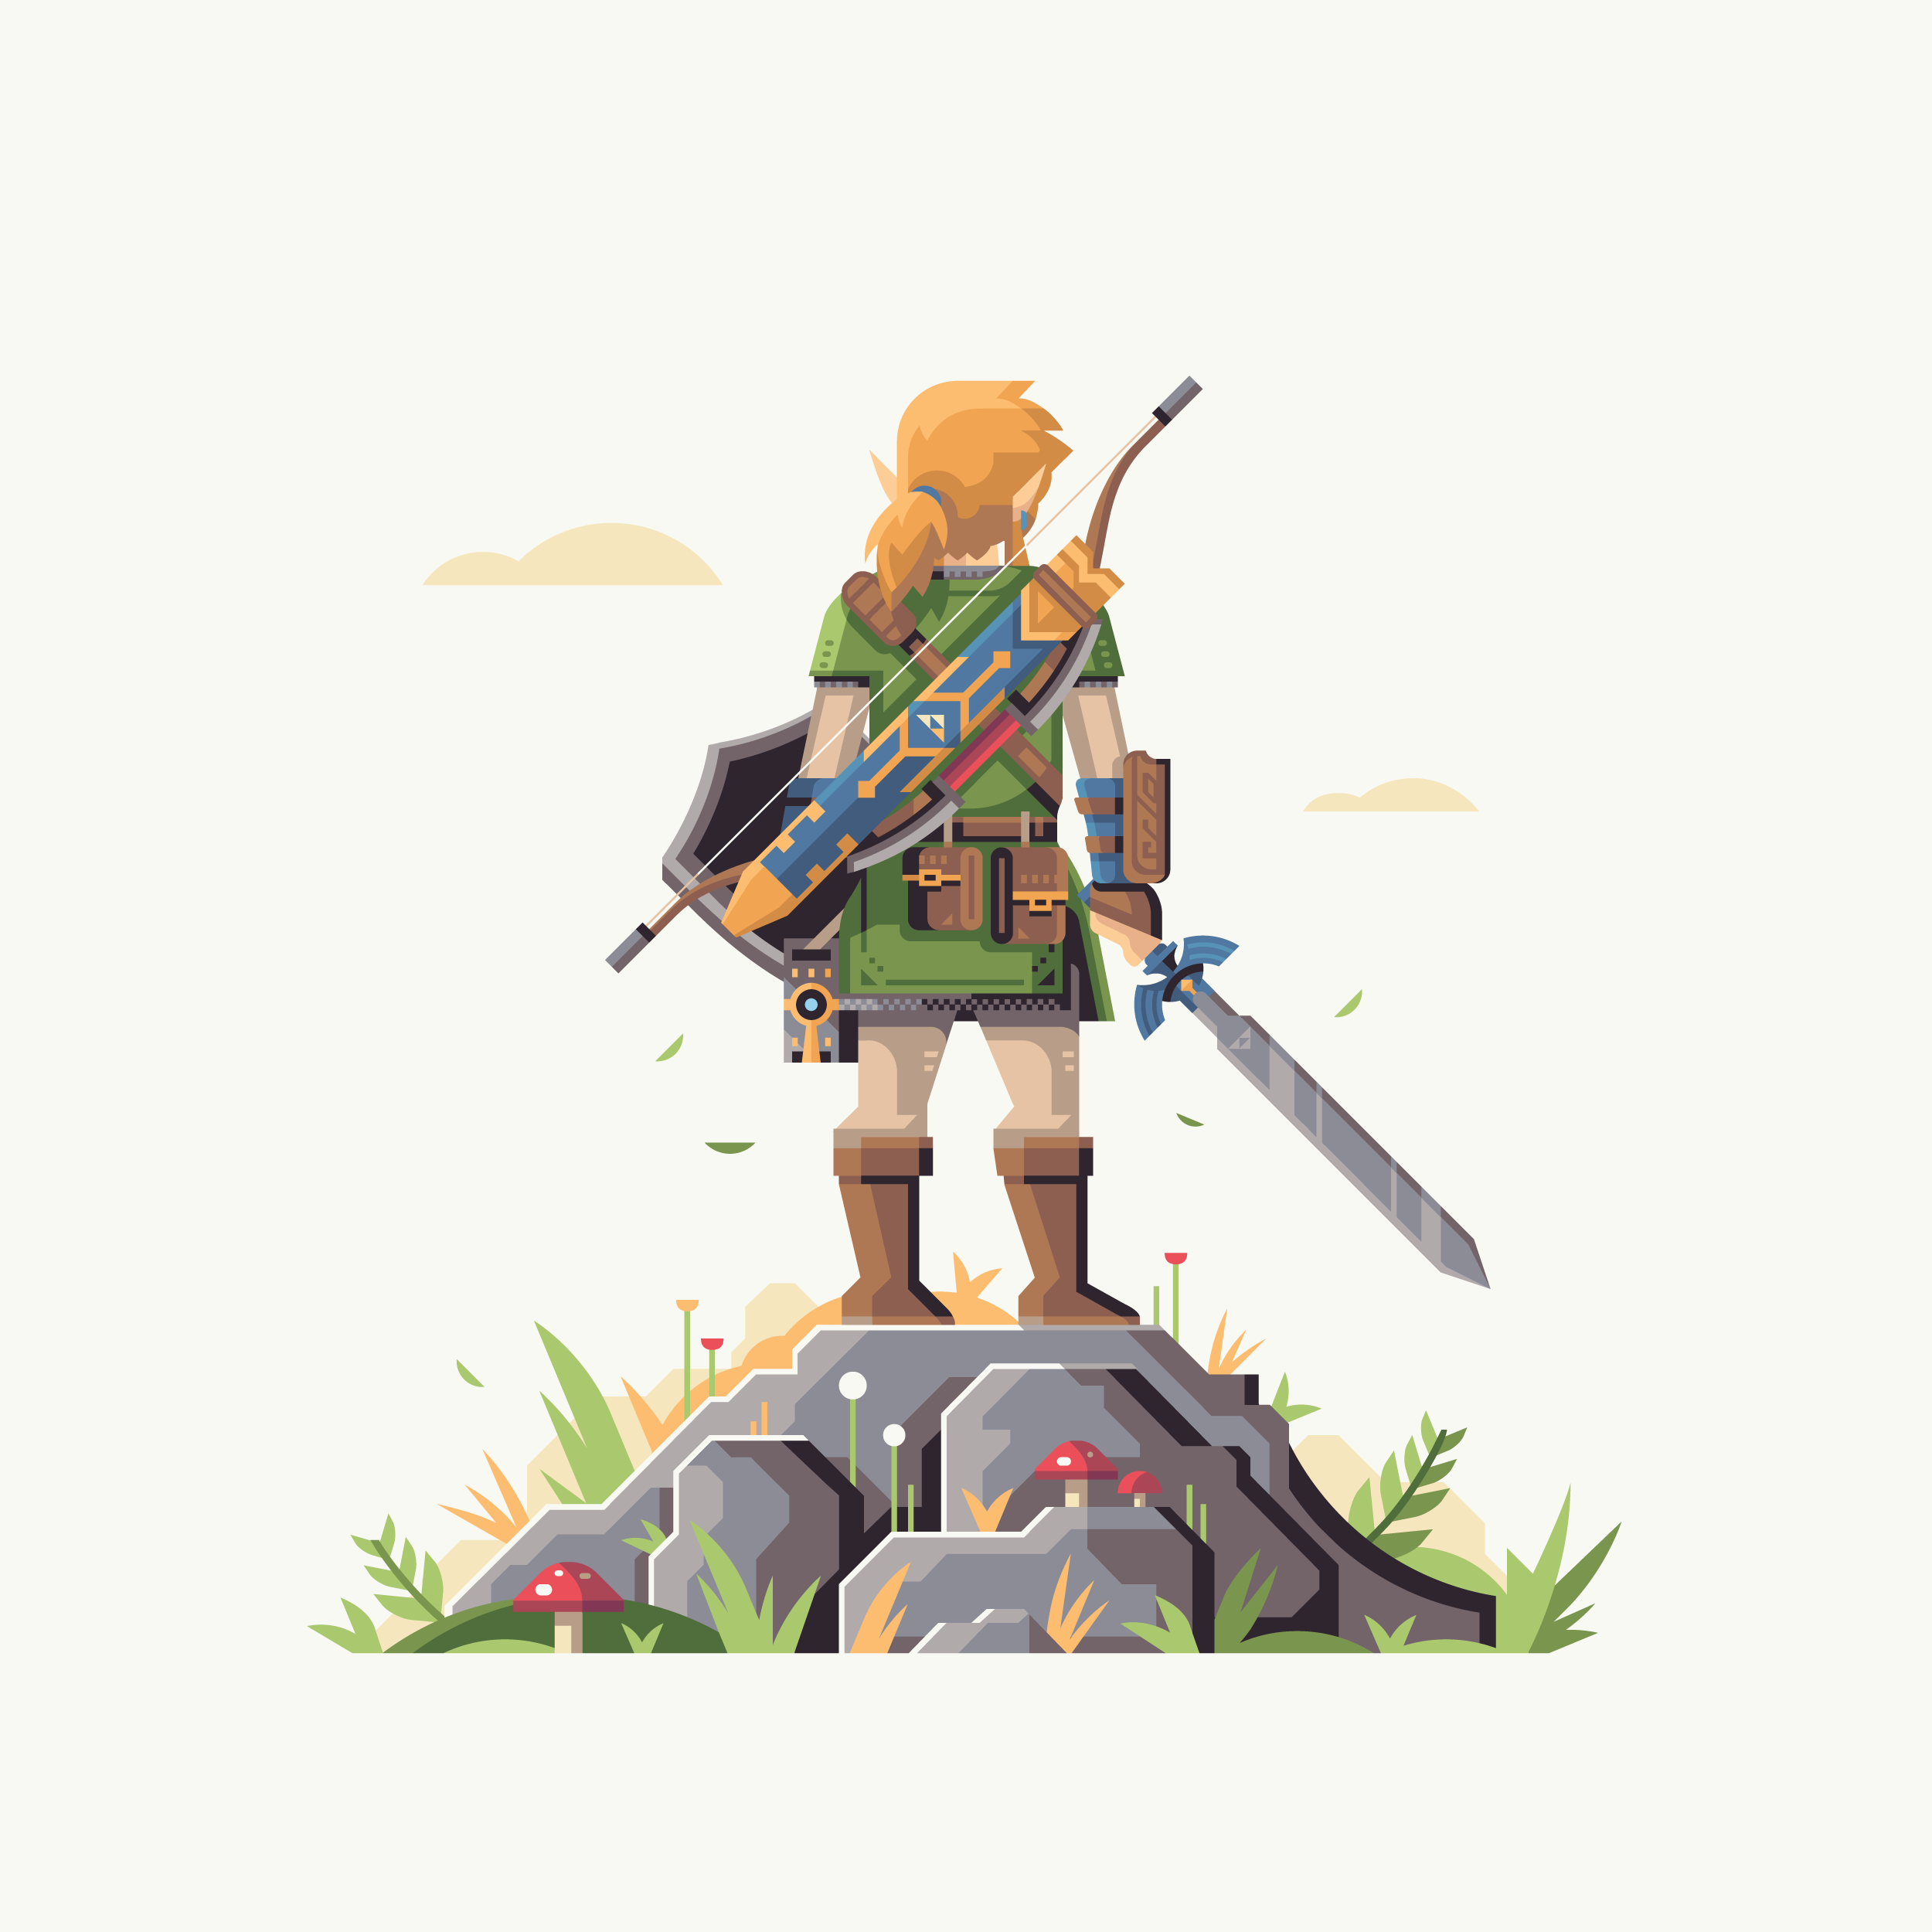 Wild series by Matt Anderson. Inspired by Zelda Breath of the Wild. Master of the Wild (Link).